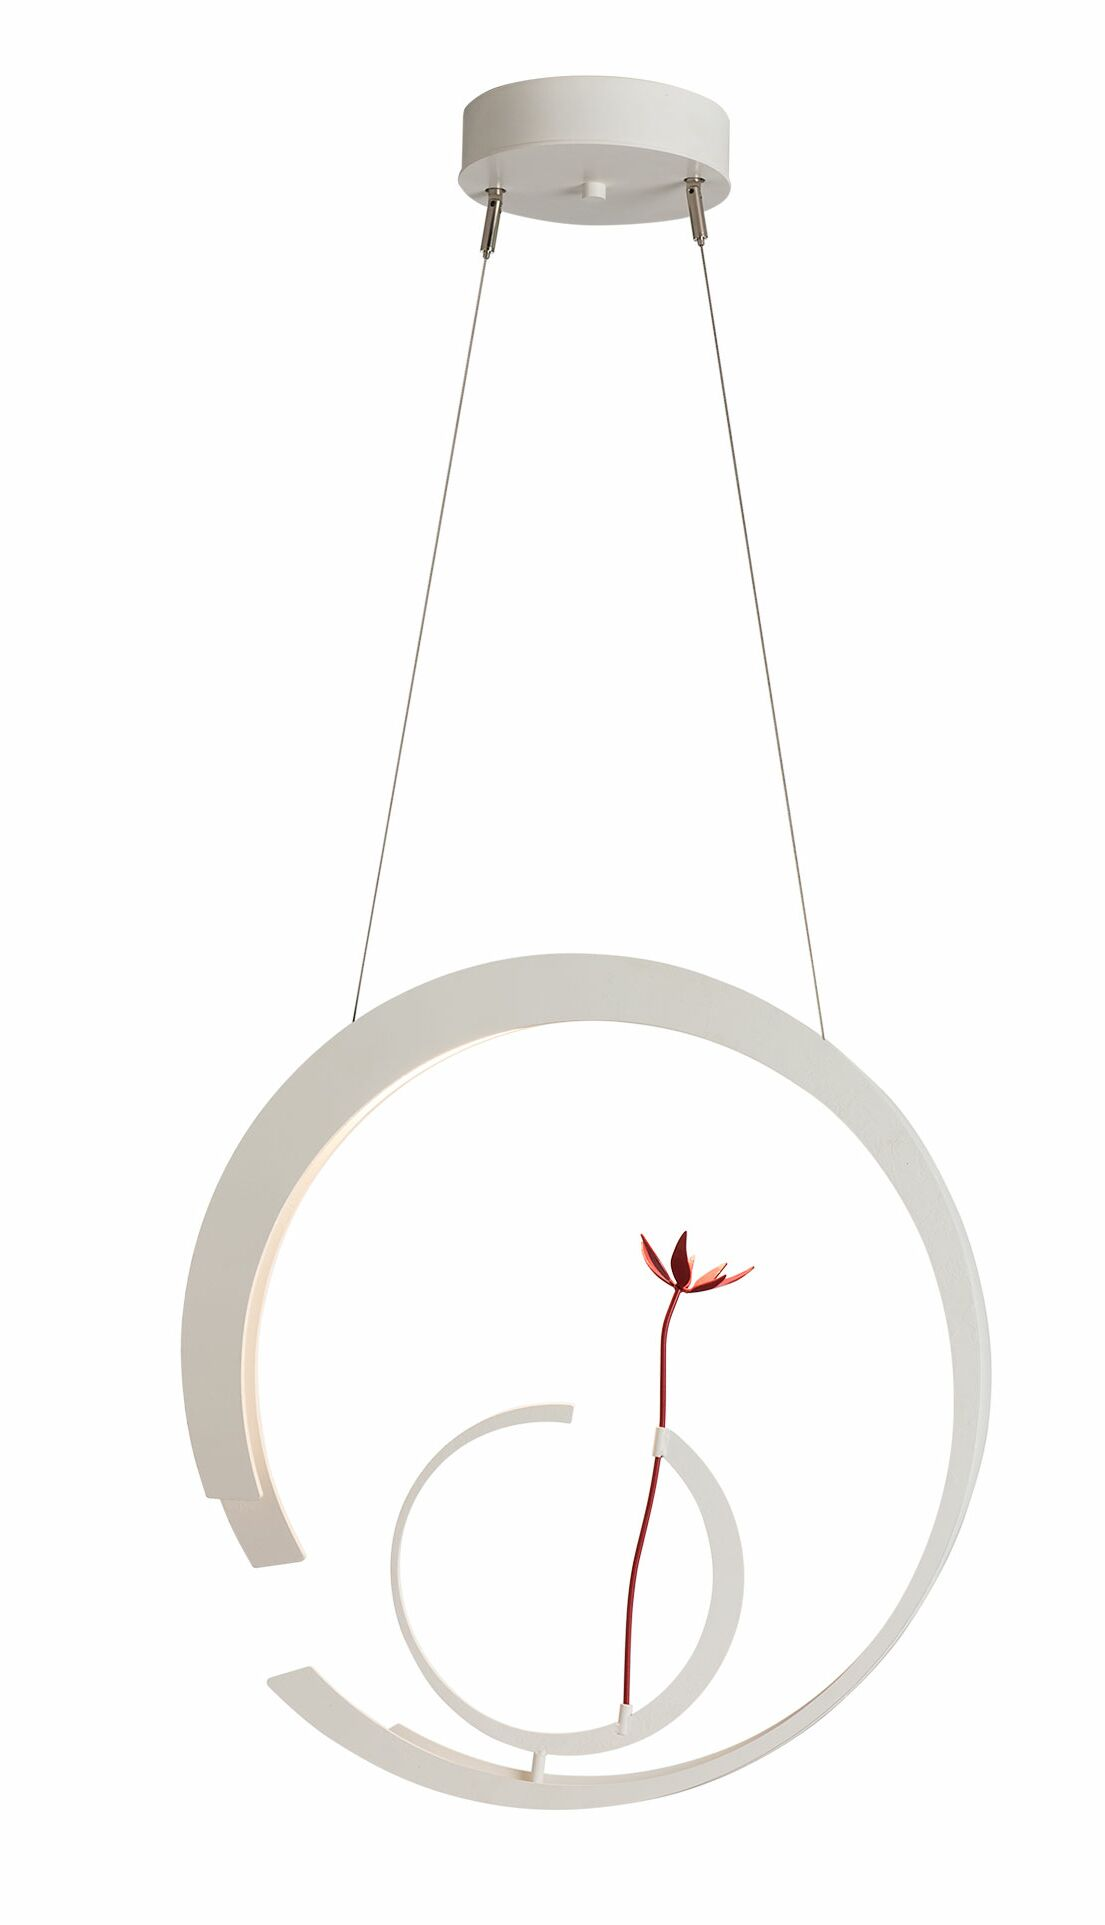 Pendarvis 1-Light  LED  Pendant Base Finish: Satin White, Finish: Satin White